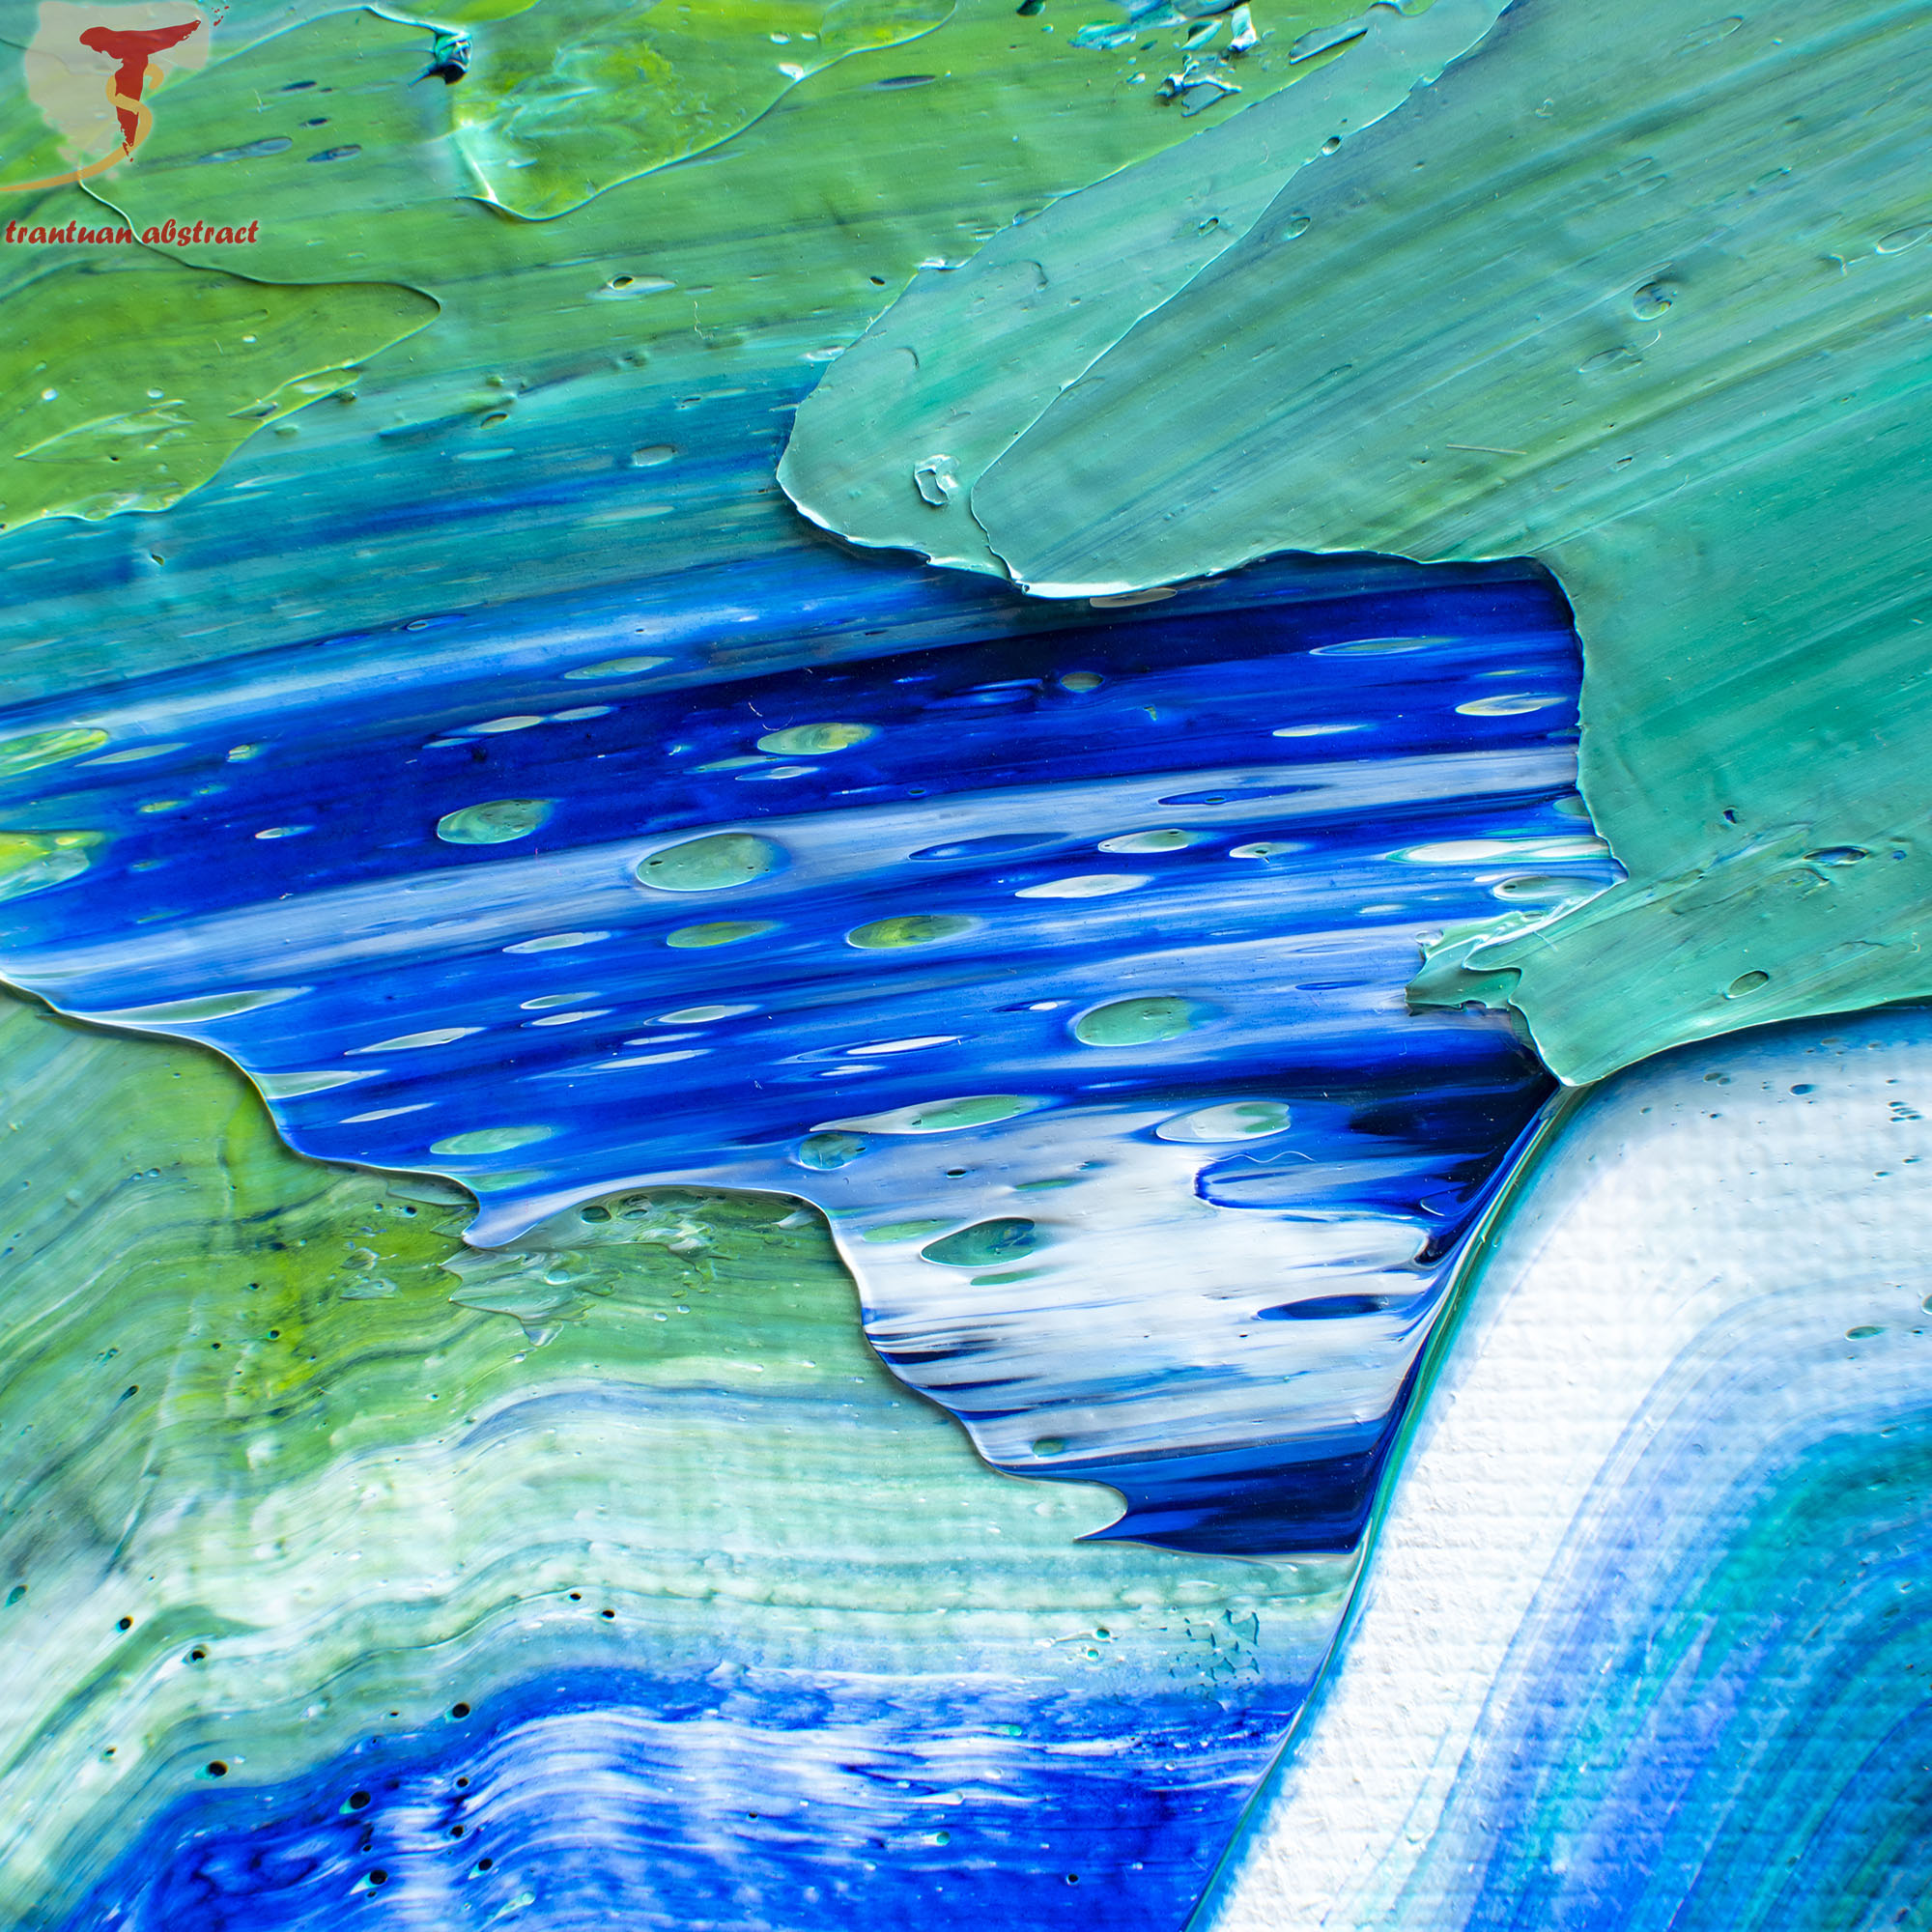 Tran Tuan Abstract Blurry Moon in Green Night 2021 135 x 80 x 5 cm Acrylic on Canvas Painting Detail